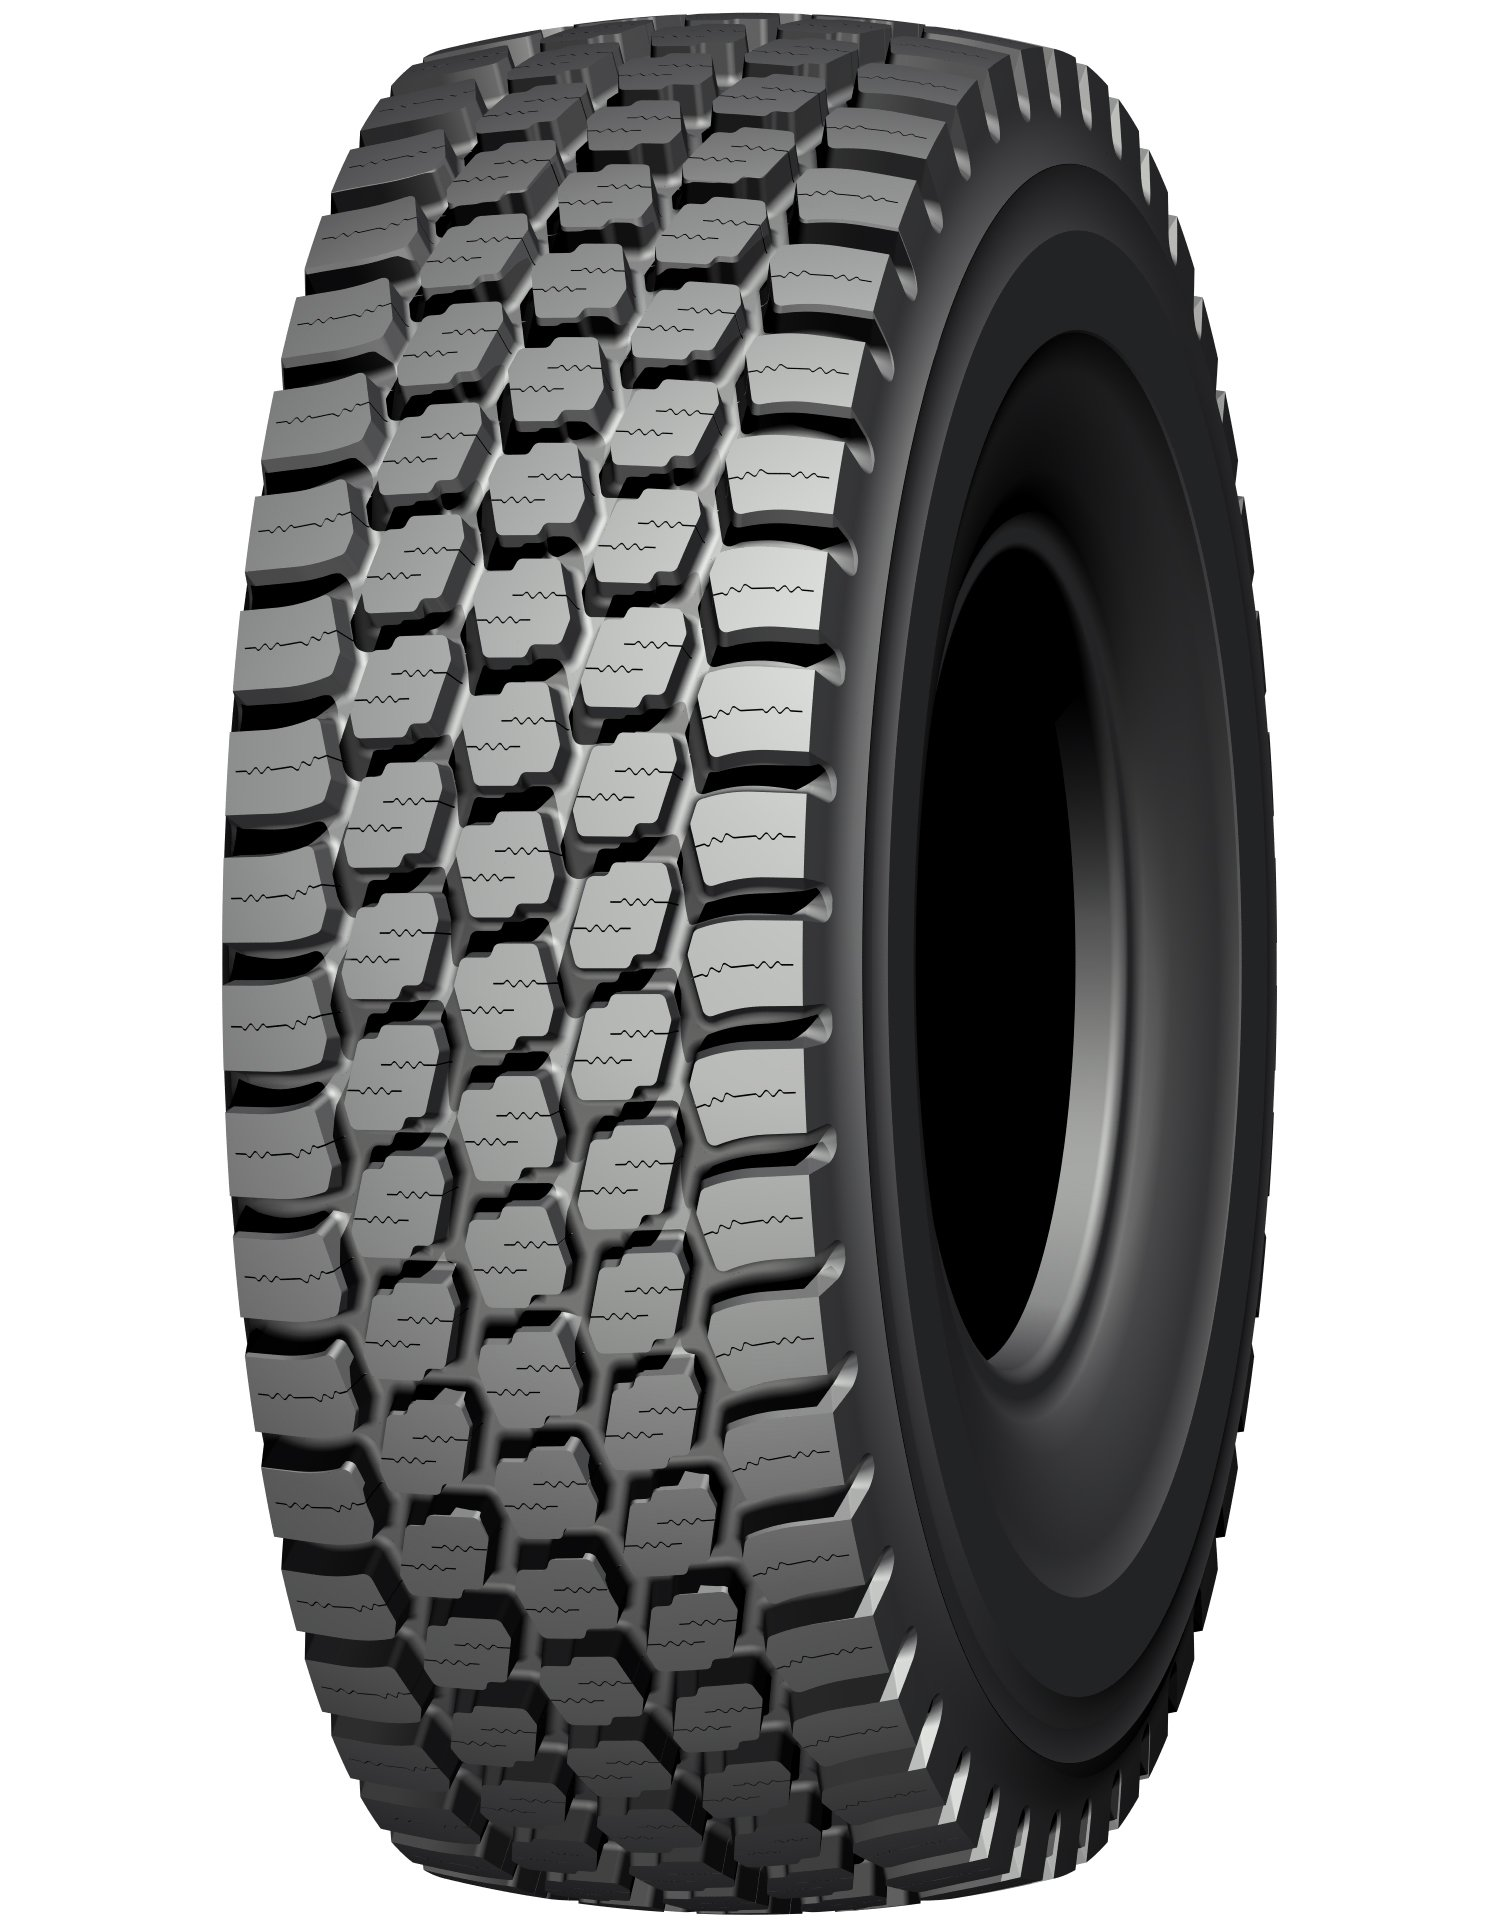 Goodyear Completes AS-3A Tire Size Lineup